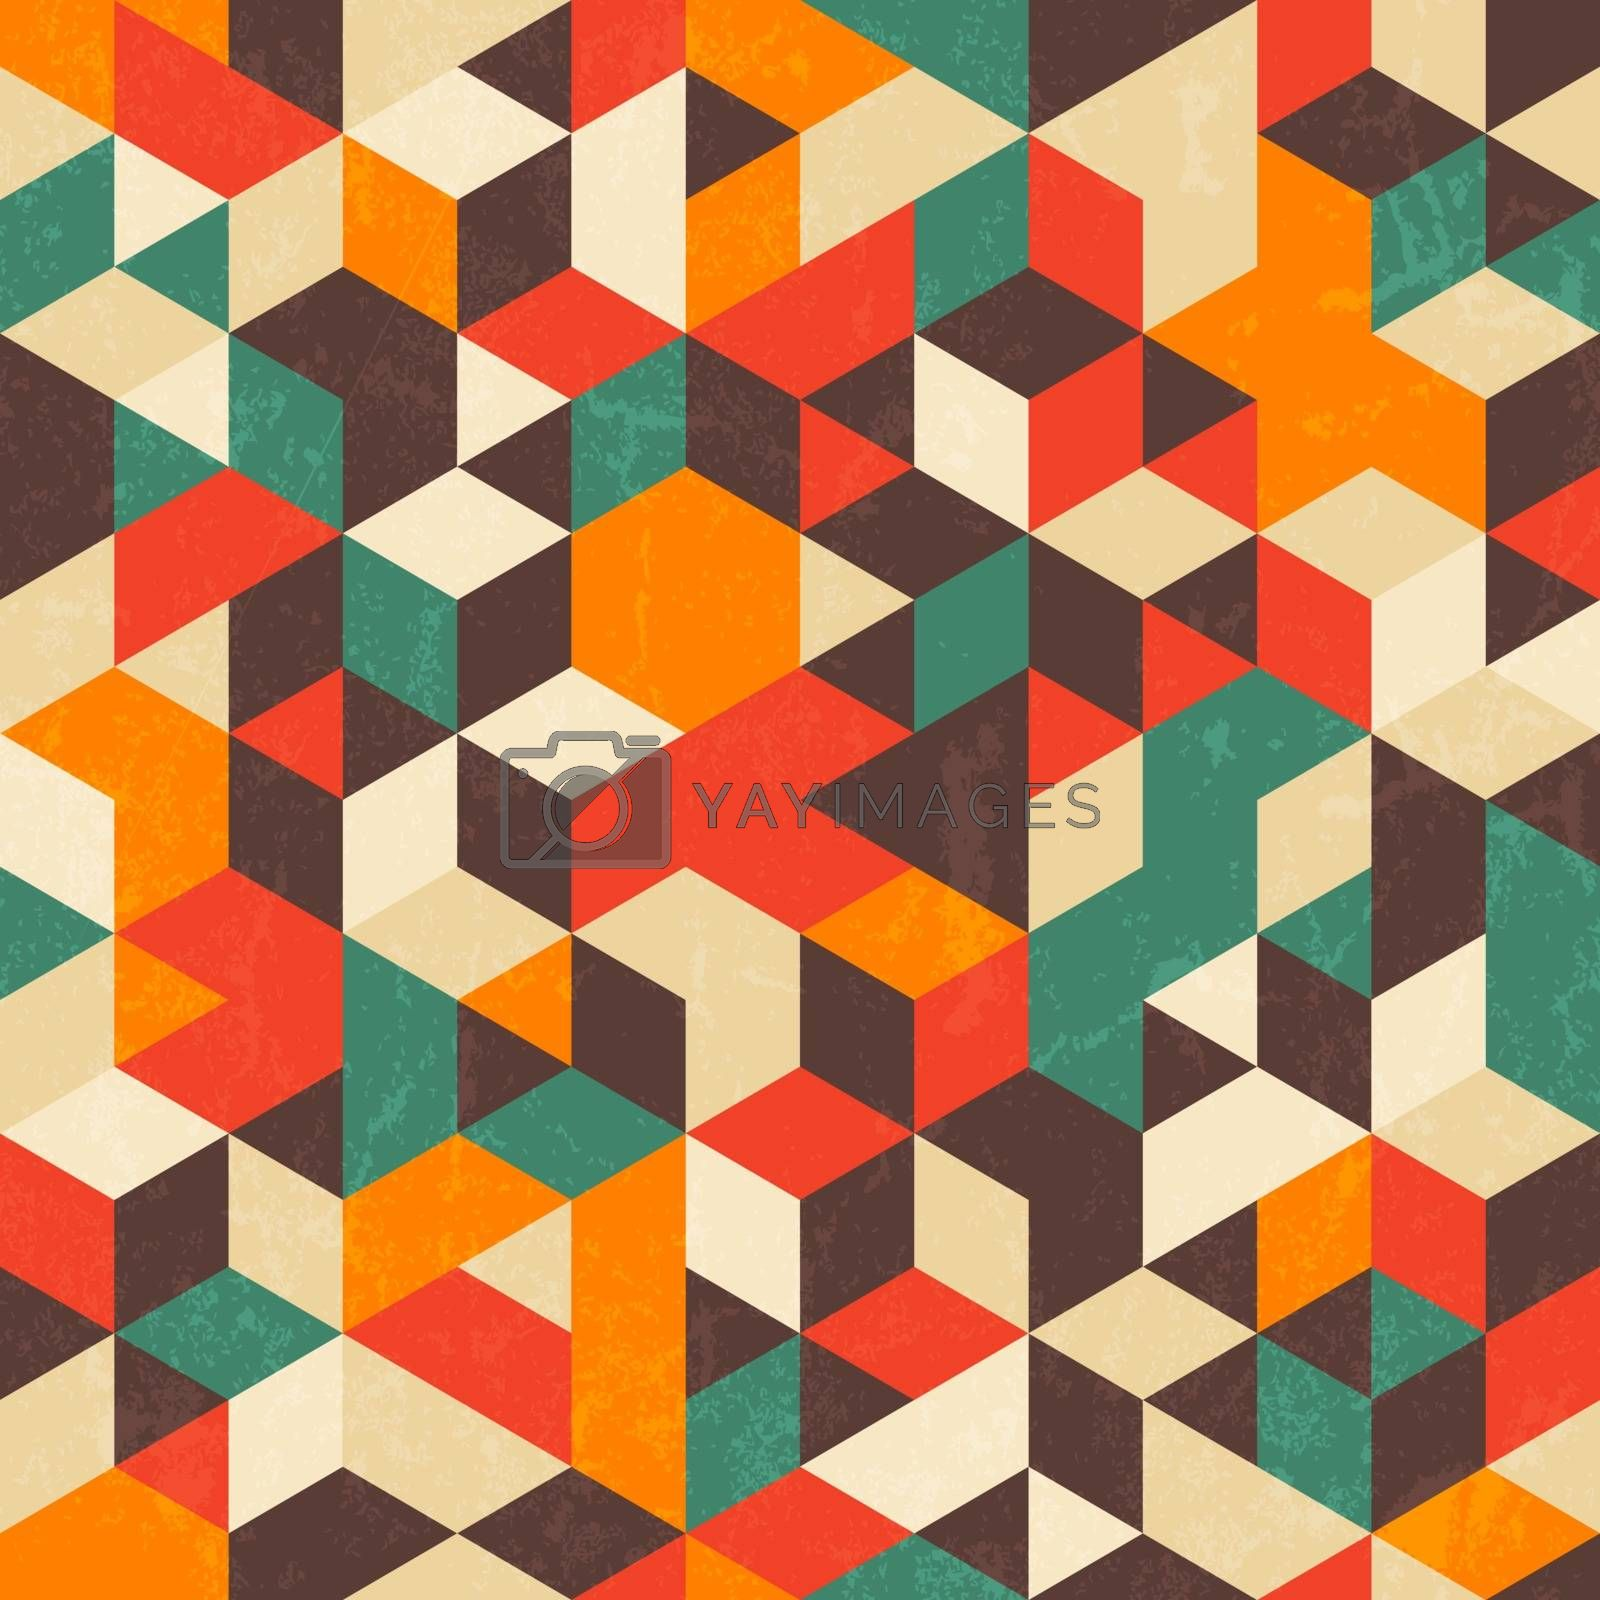 Retro geometric pattern with grunge texture. Seamless abstract background. by evdakovka